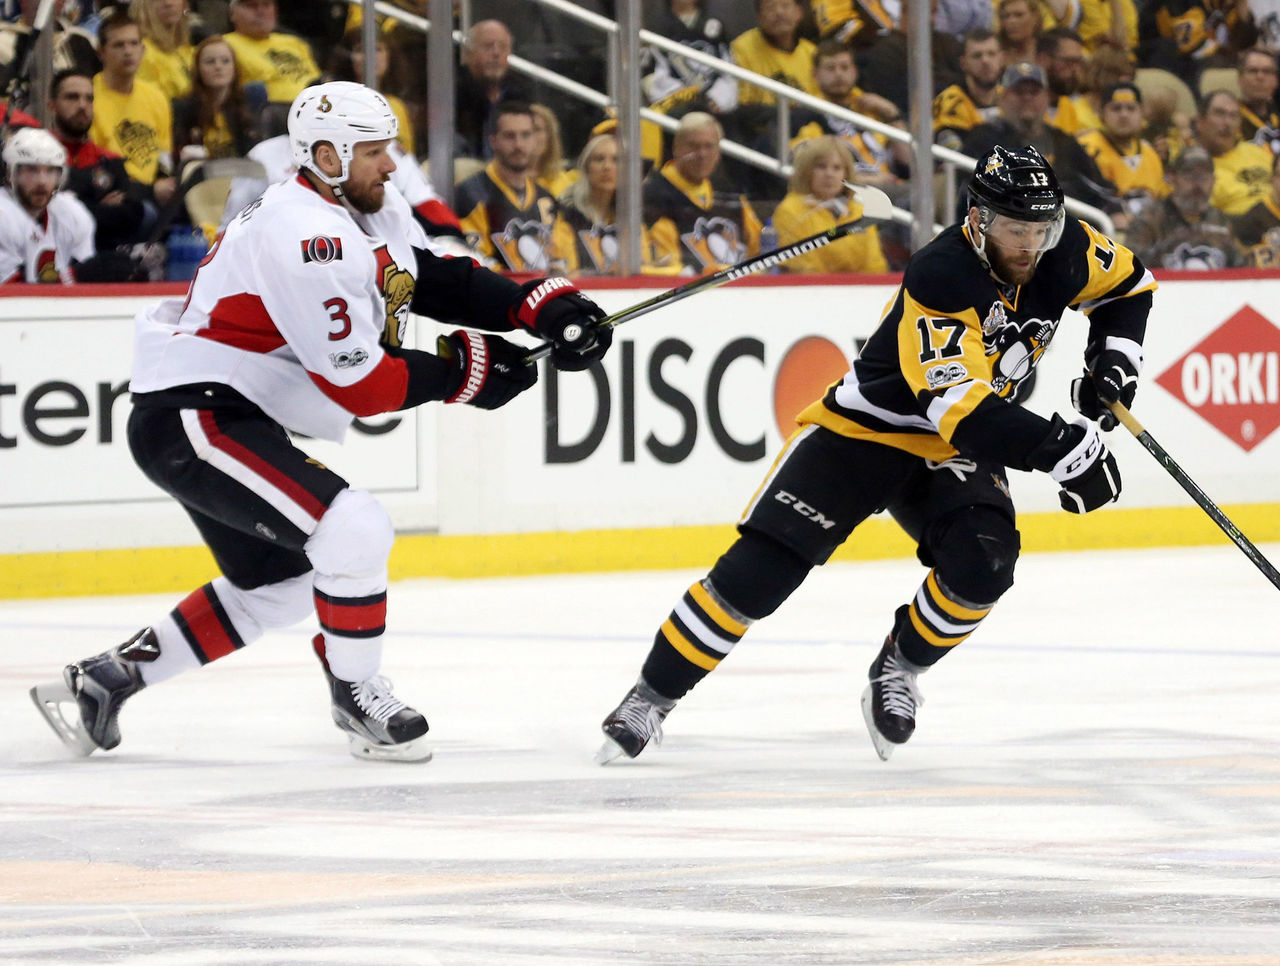 Cropped 2017 05 14t011347z 2112644179 nocid rtrmadp 3 nhl stanley cup playoffs ottawa senators at pittsburgh penguins